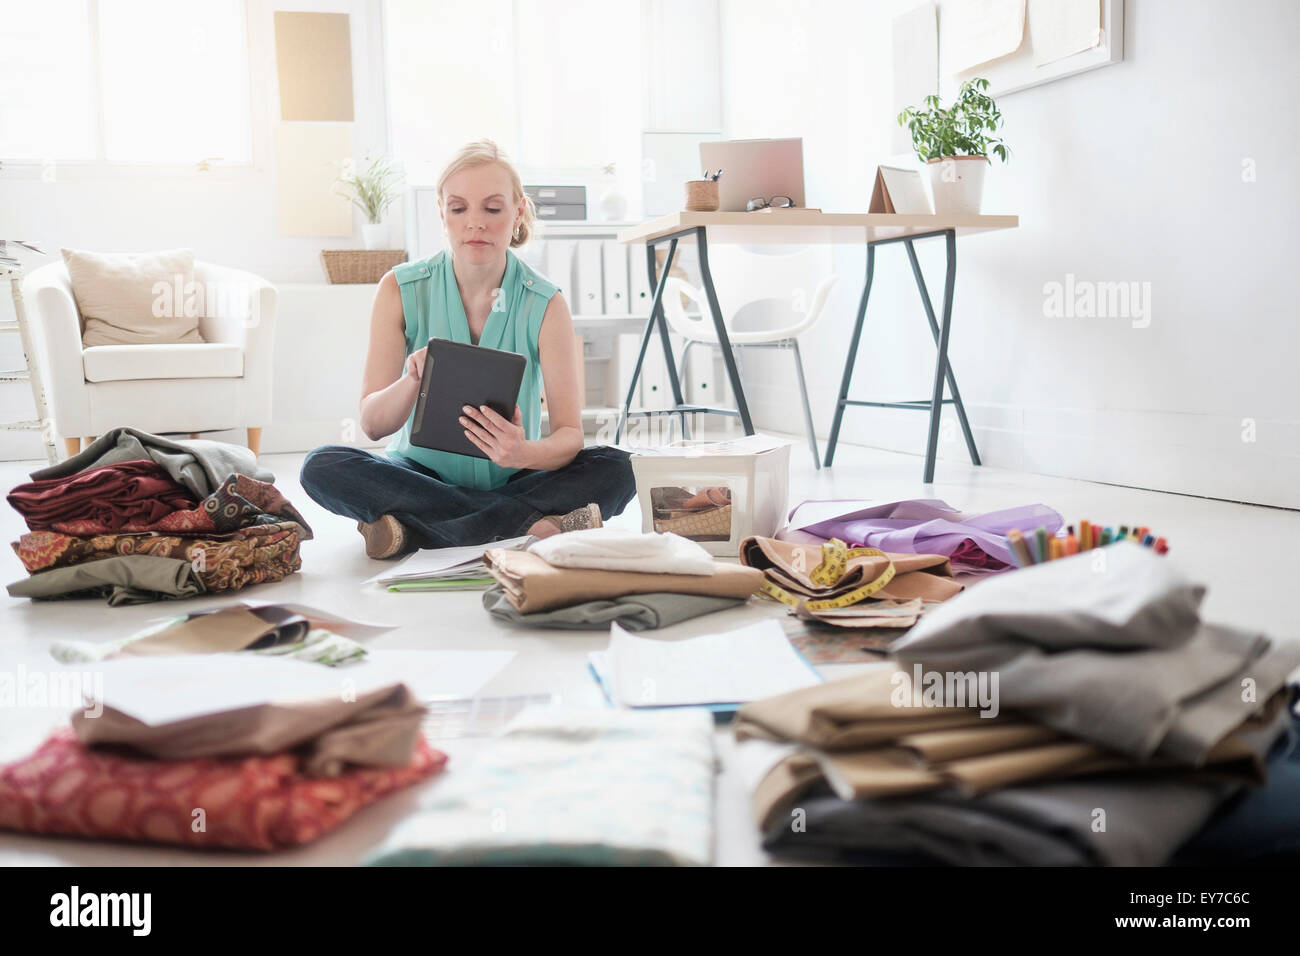 Design professional working in living room - Stock Image